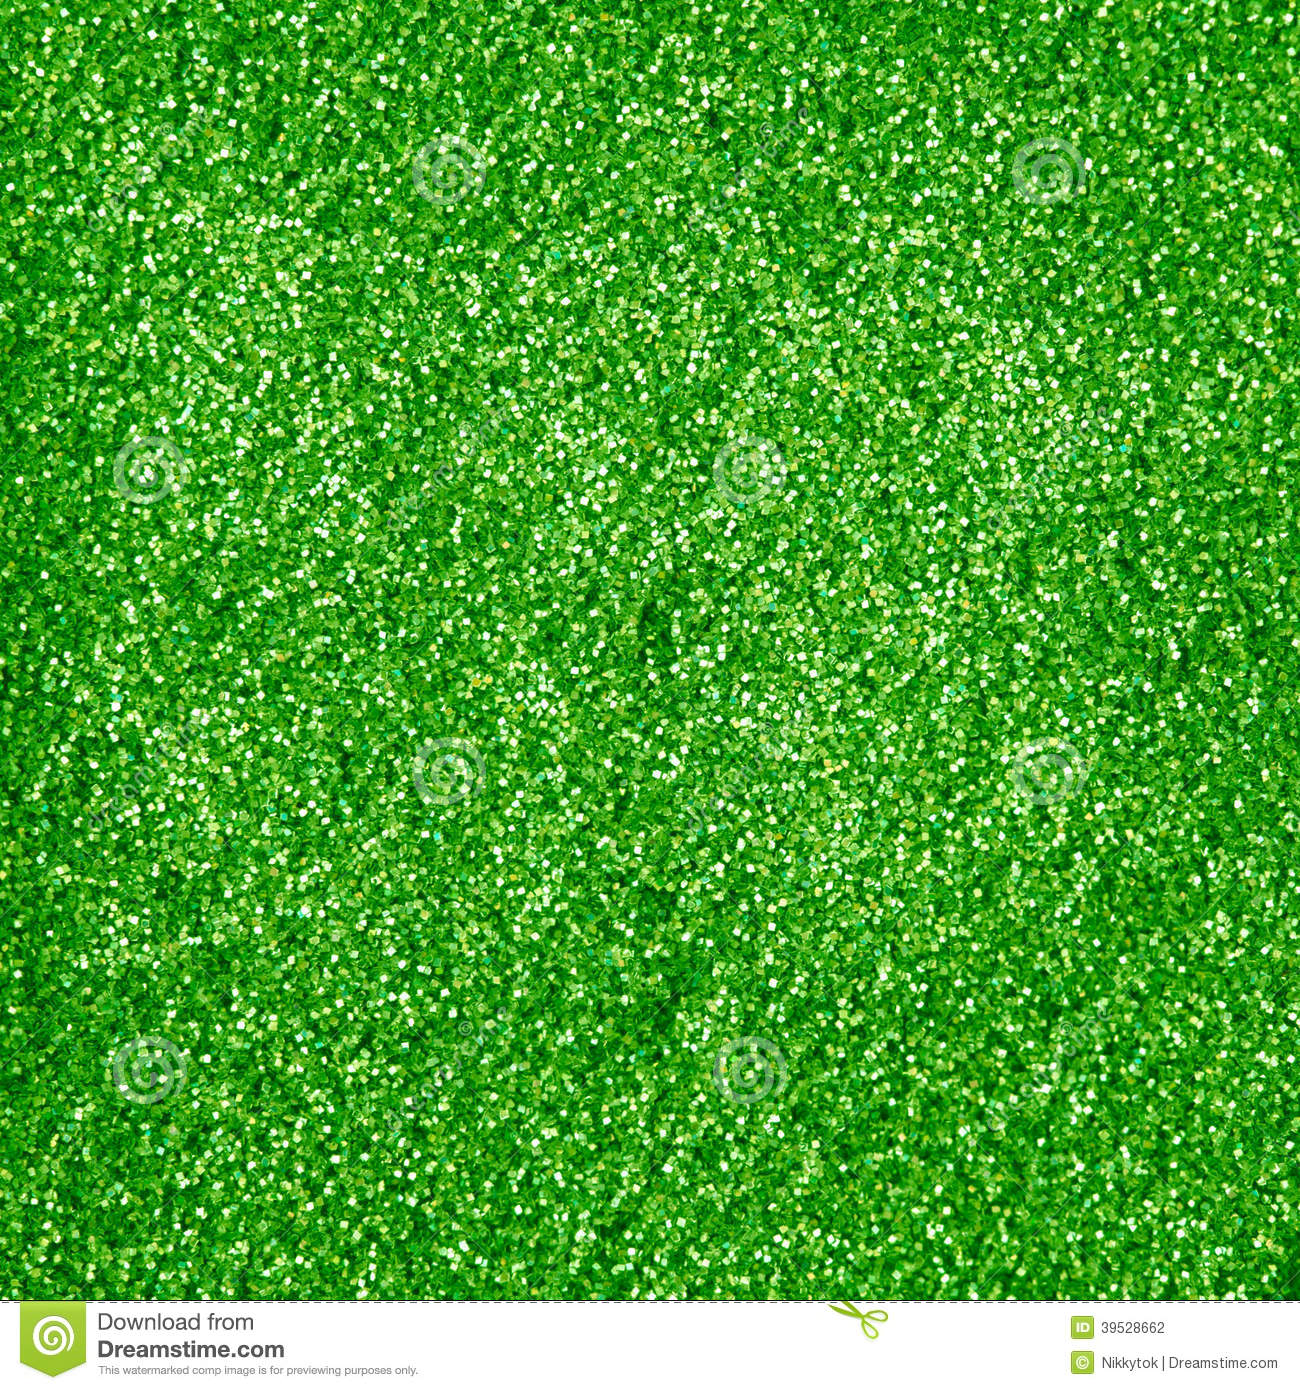 green sparkle background - photo #35